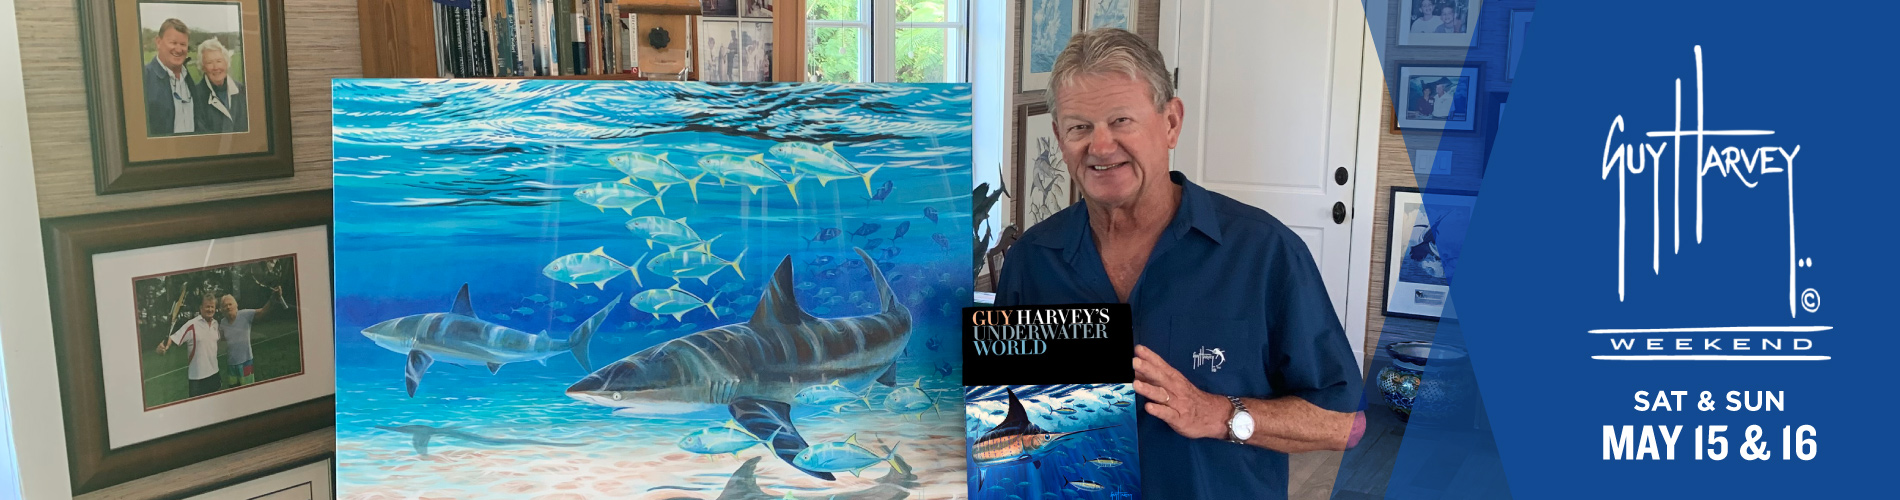 Guy Harvey with his new book and one of his recent paintings.